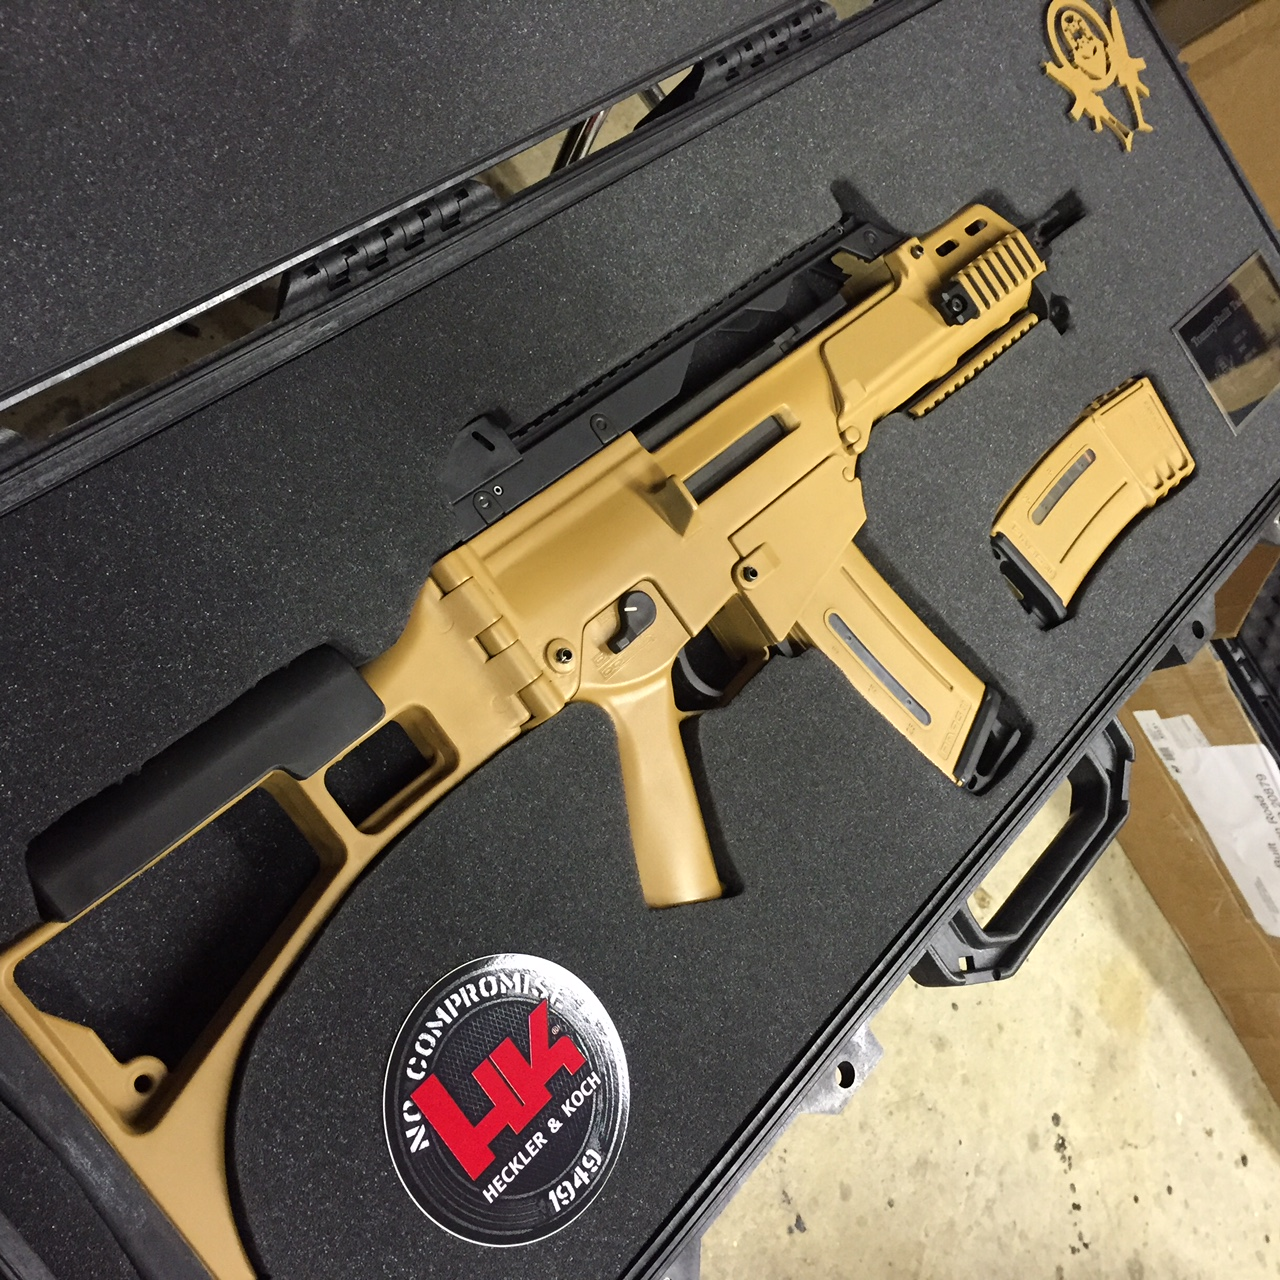 WTS G36C clone build in RAL-8000-img_5450.jpg